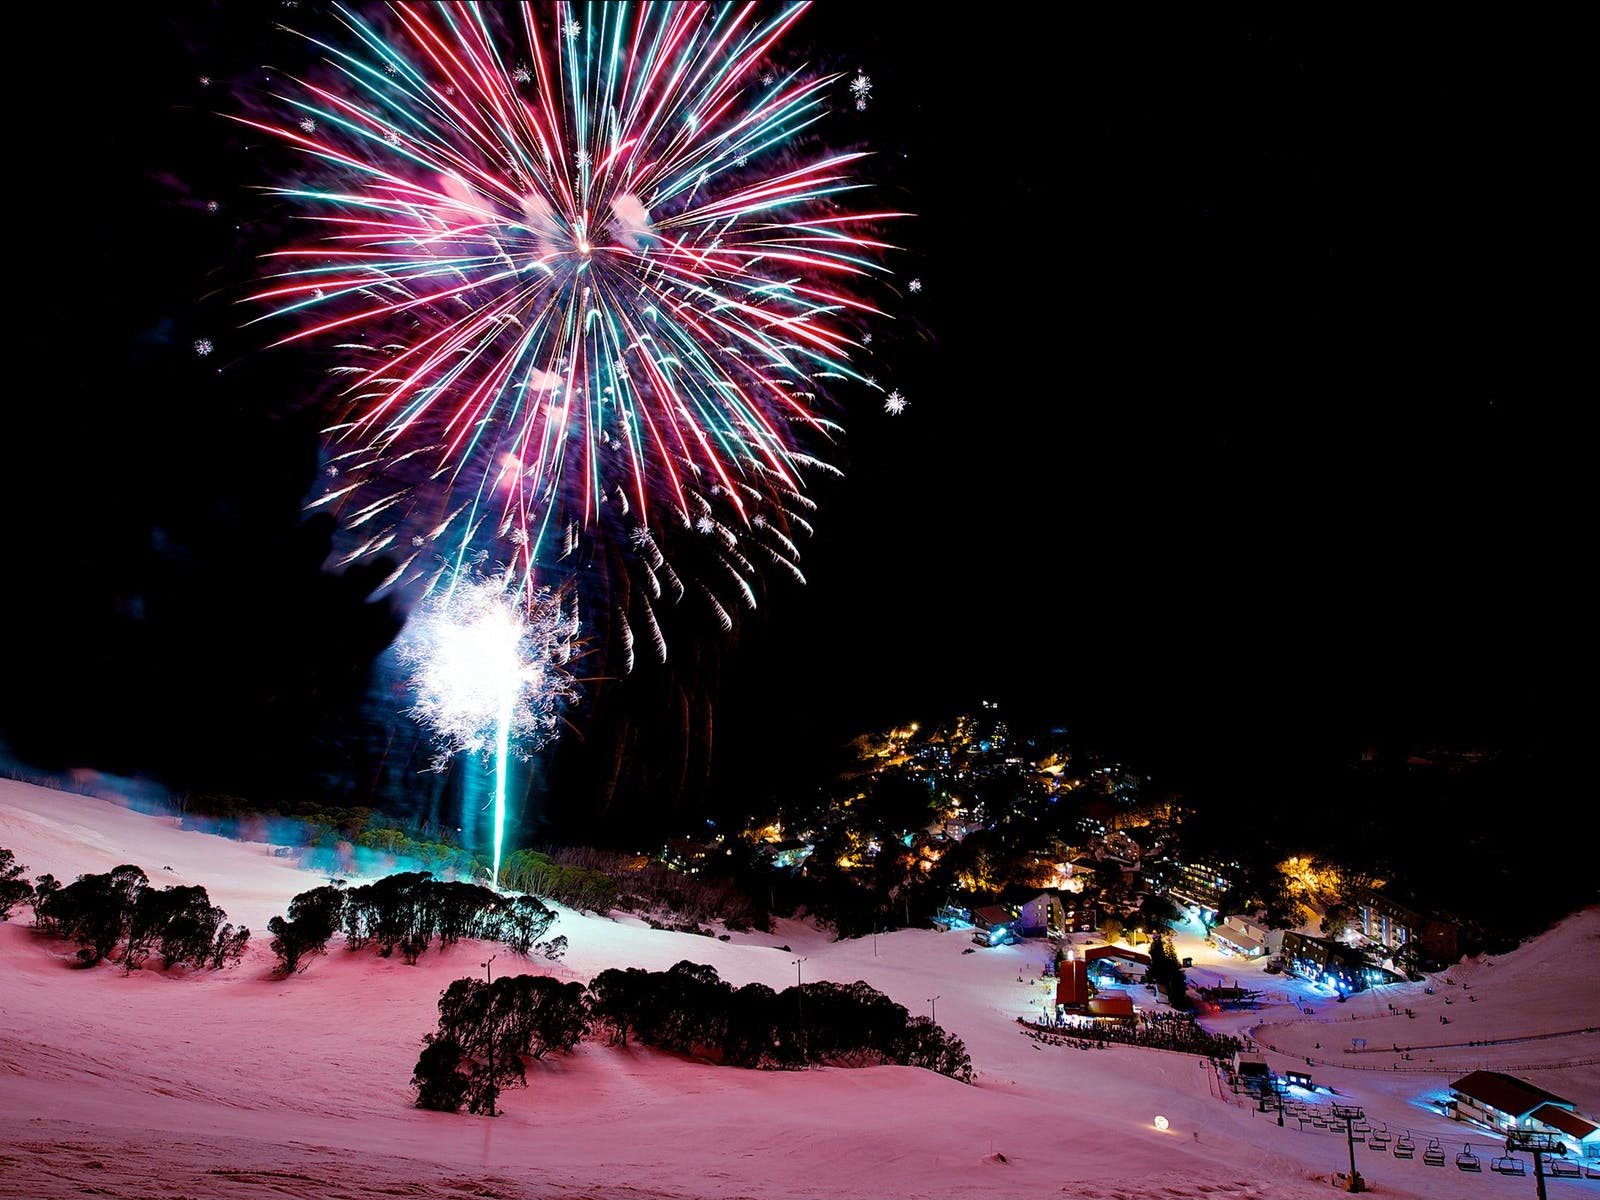 Fireworks at Falls Creek